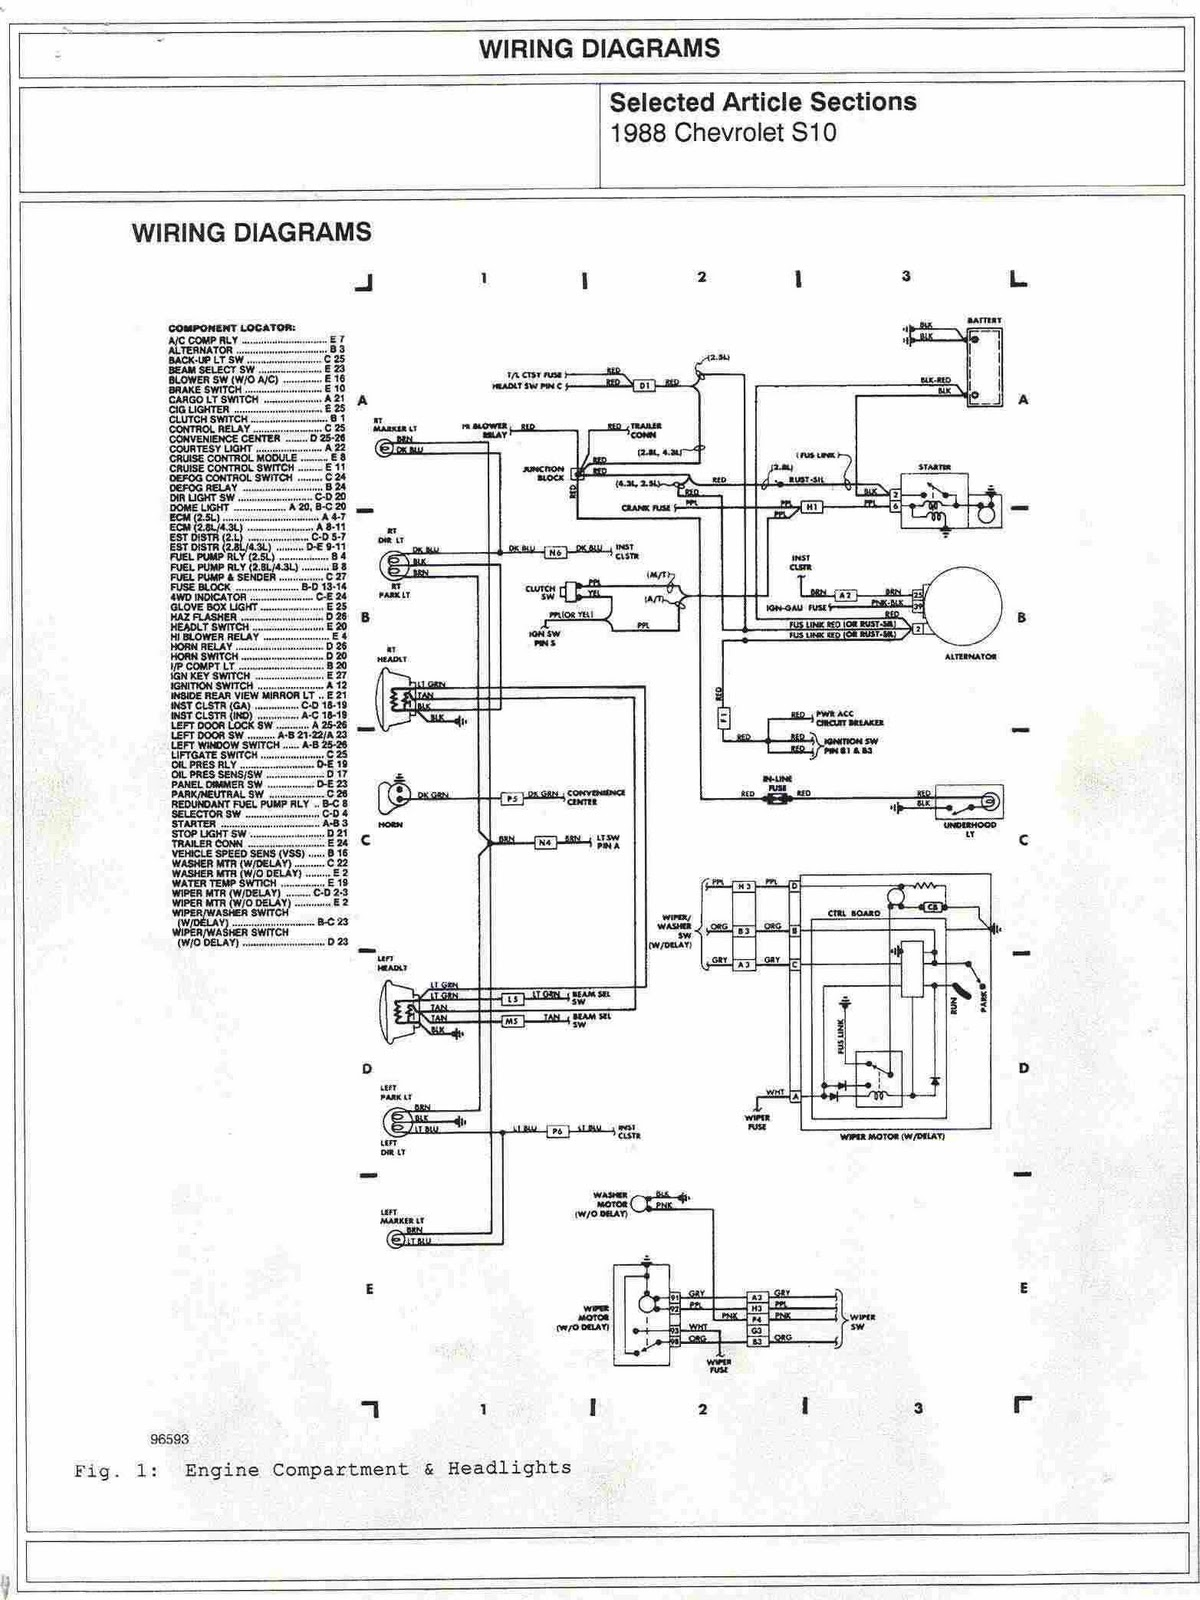 hight resolution of 1988 s10 wiring diagram wiring diagram forward 1988 chevy s10 steering column wiring diagram 1988 s10 wiring diagram